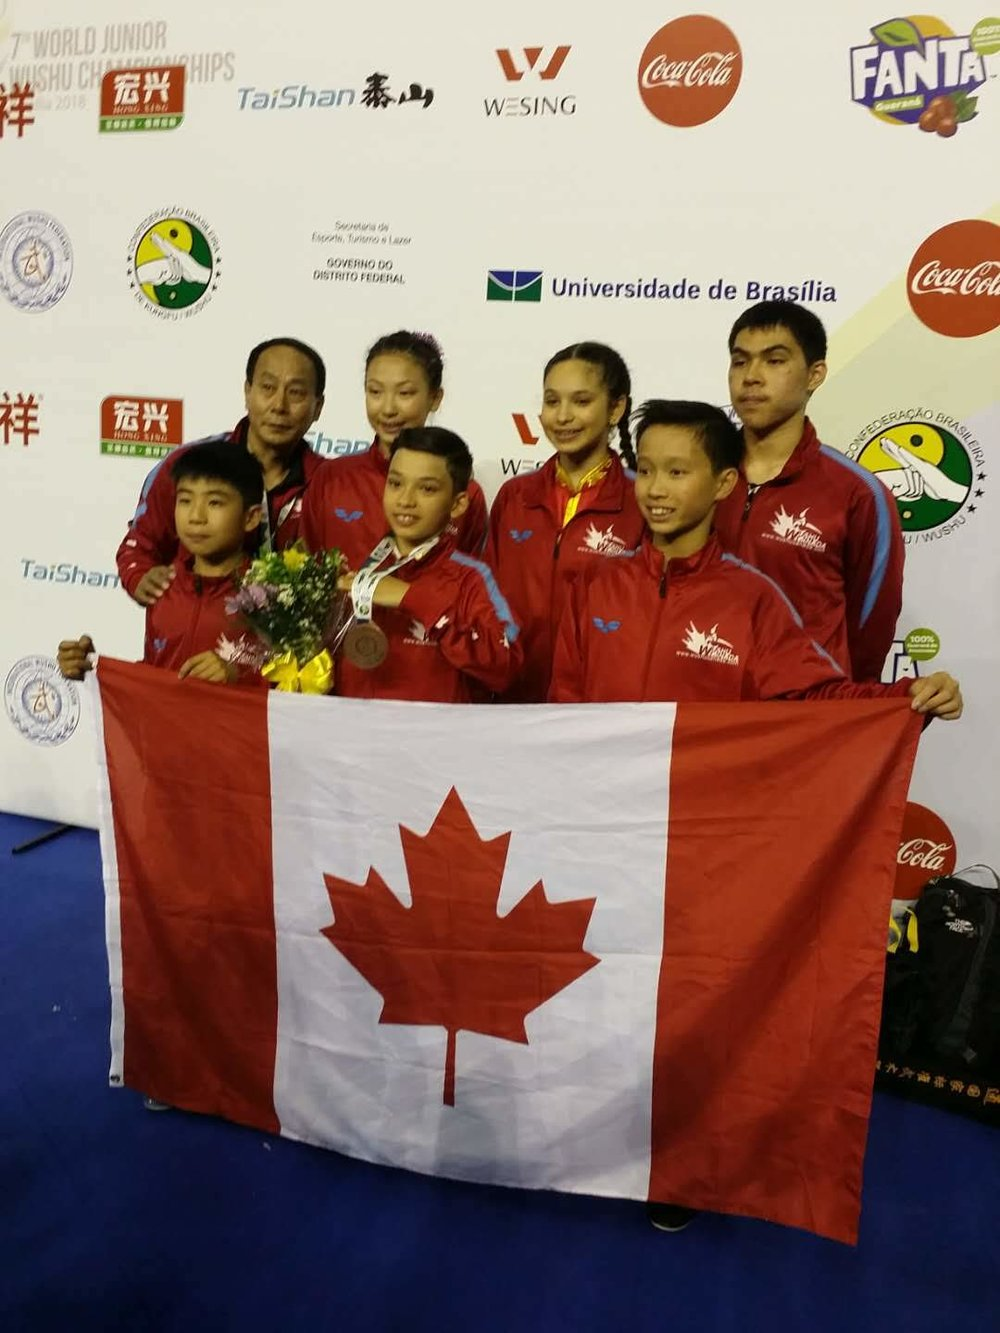 wayland-li-wushu-world-junior-wushu-brazil-team-canada-2018-06.jpg